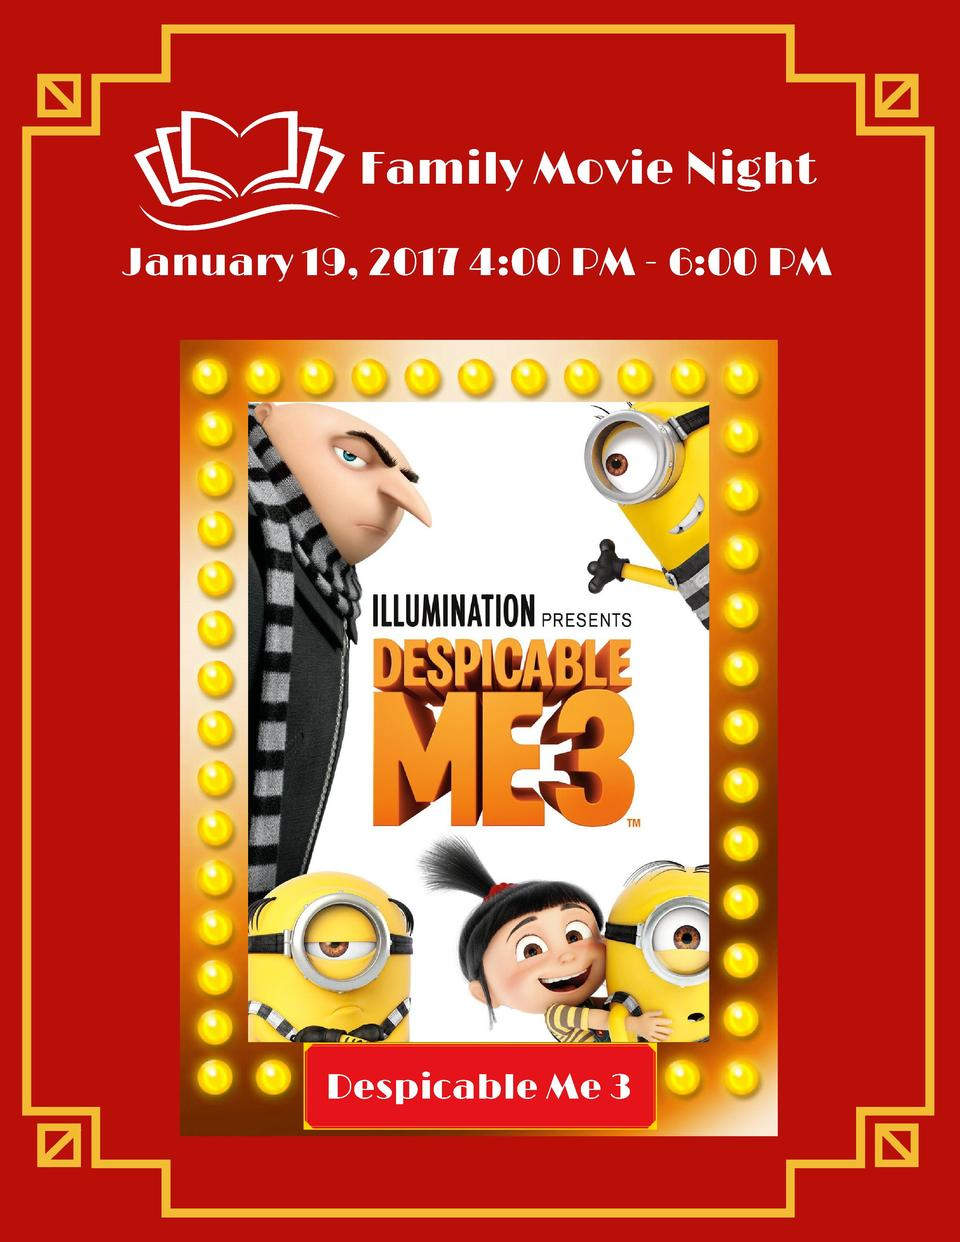 Family Movie Night January 19, 2017 4 00 PM - 6 00 PM  Despicable Me 3